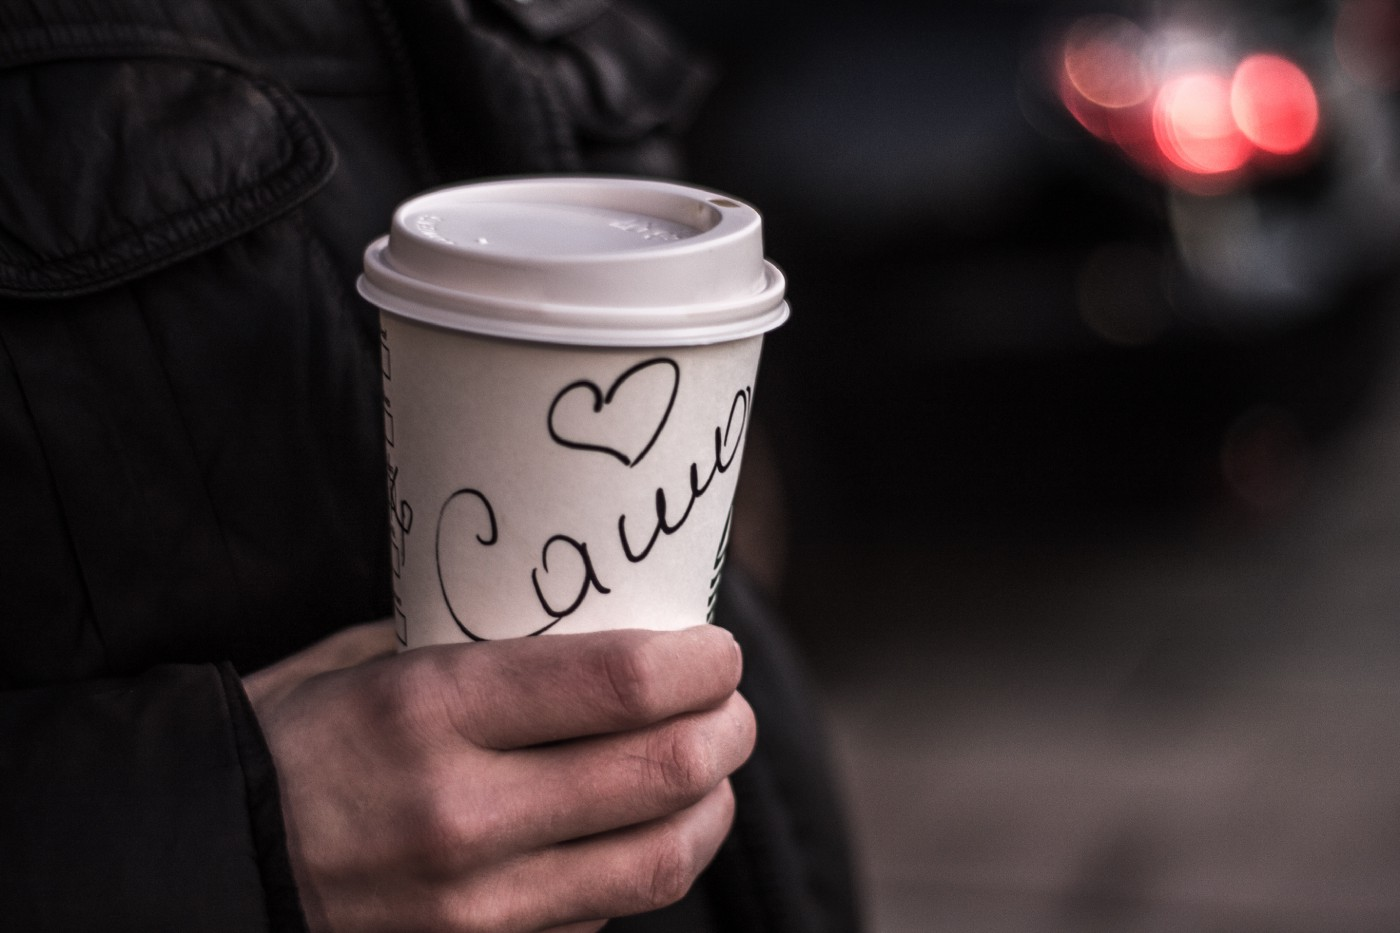 Hand holding a coffee cup with a first name scribbled on it